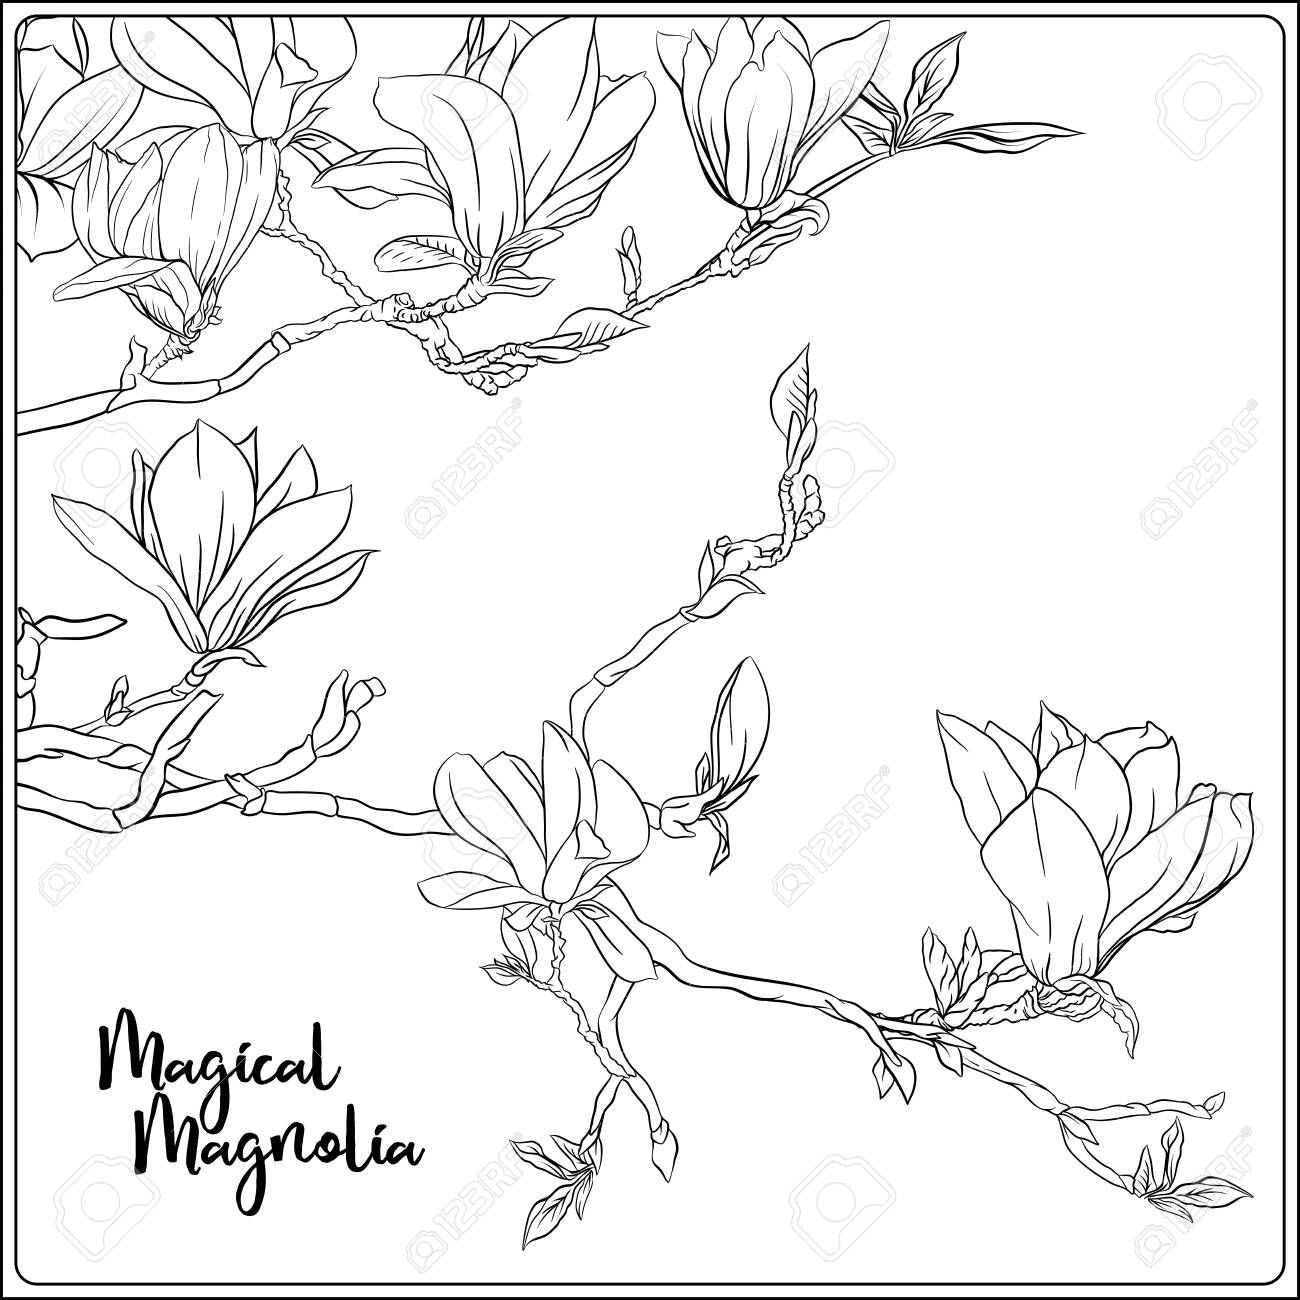 magnolia tree branch with flowers coloring page for the